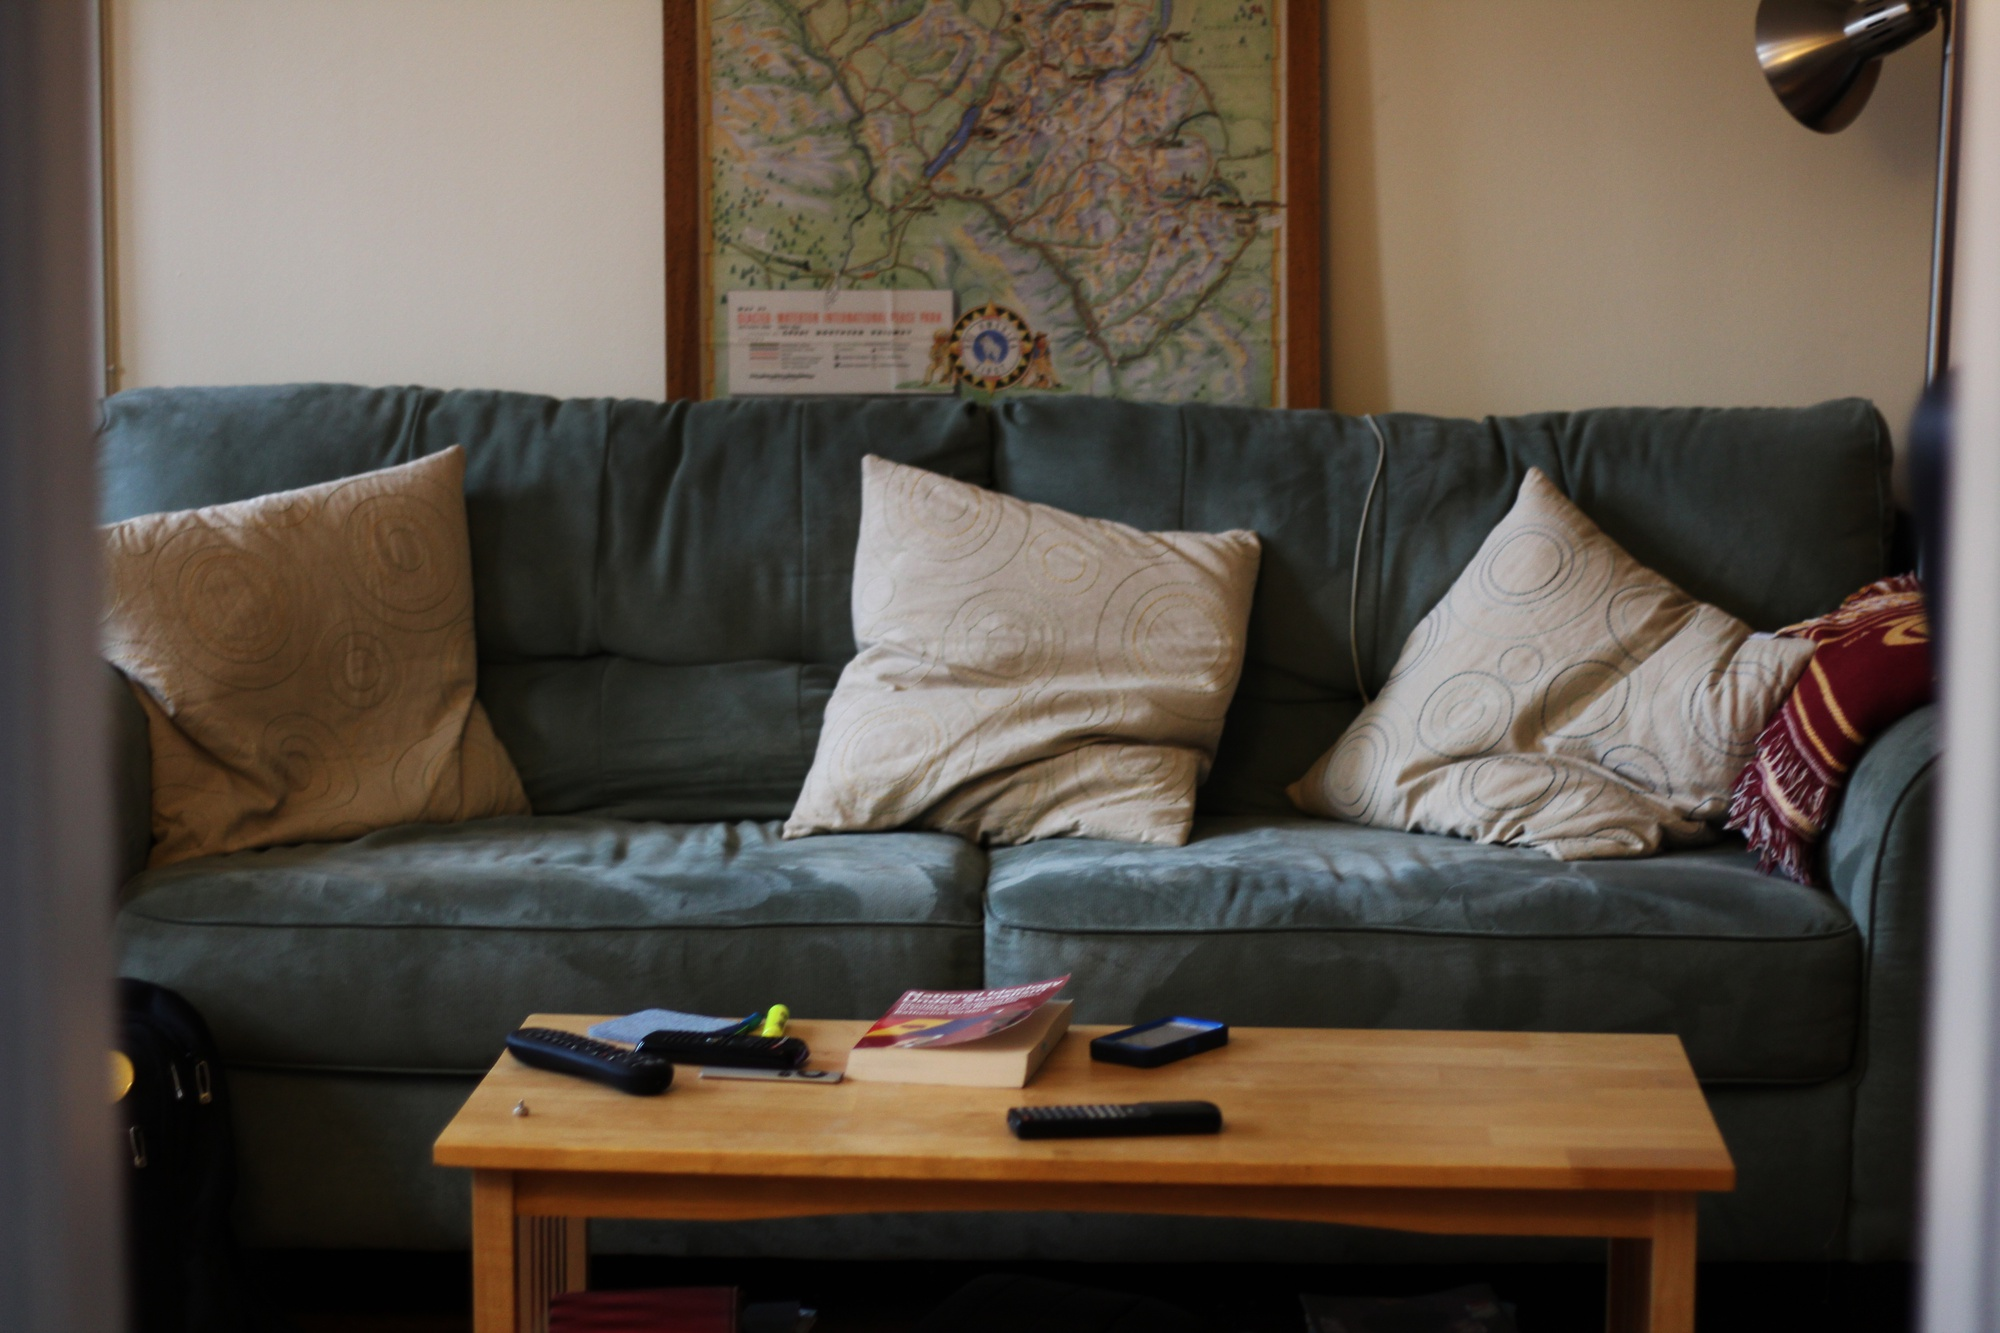 A view of Erin M. Hutchinson's couch and living room decor from the corridor leading to her bedroom.